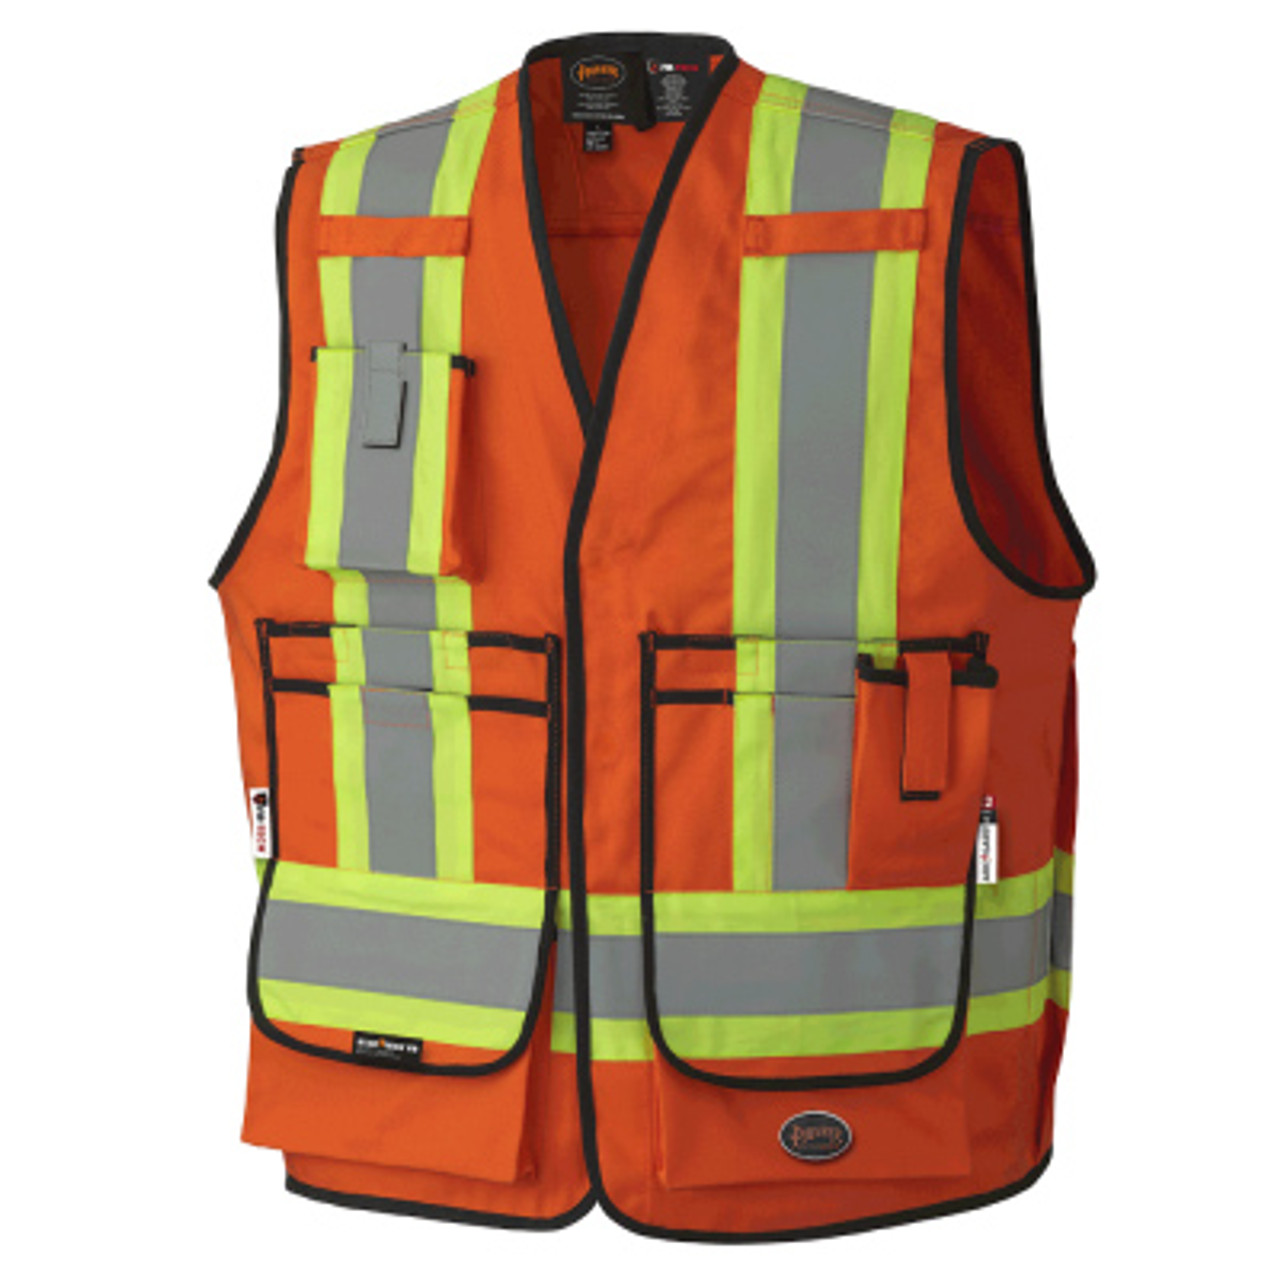 HI VIS Breathable Safety Jacket Coat Radio Loop D Ring High Visibility Workwear